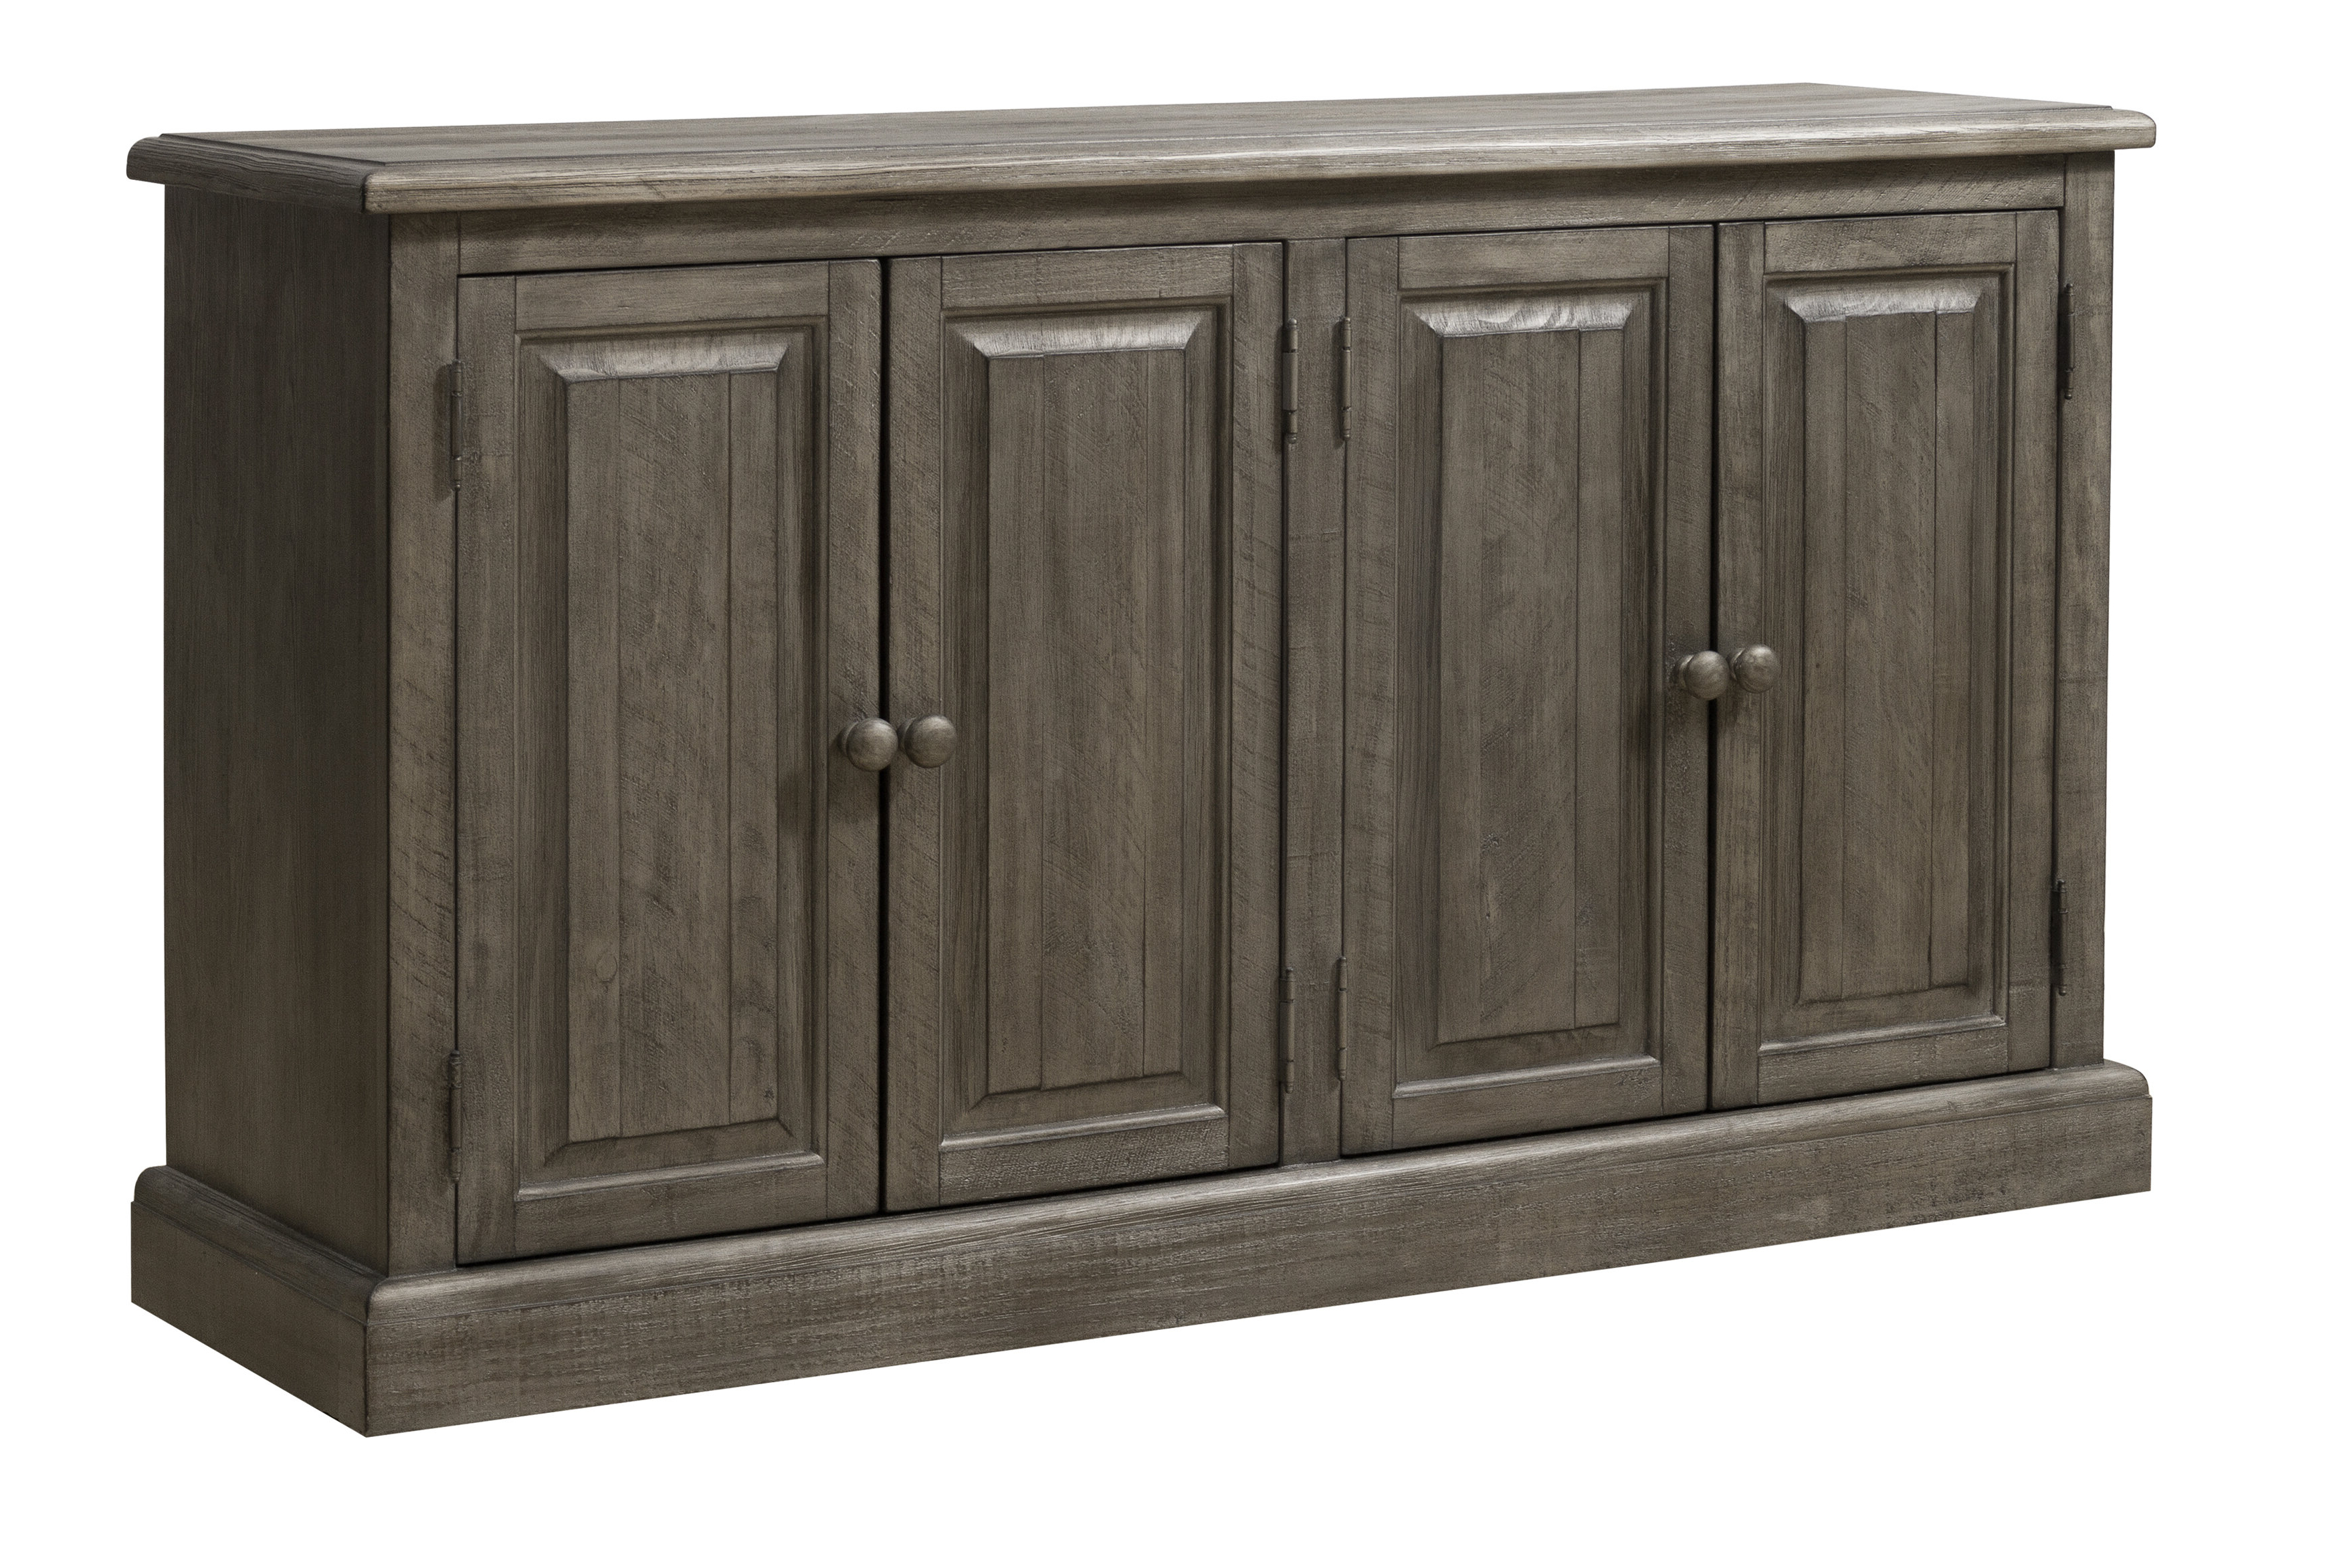 Canalou Classic 4 Door Sideboard Intended For Stennis Sideboards (View 7 of 20)